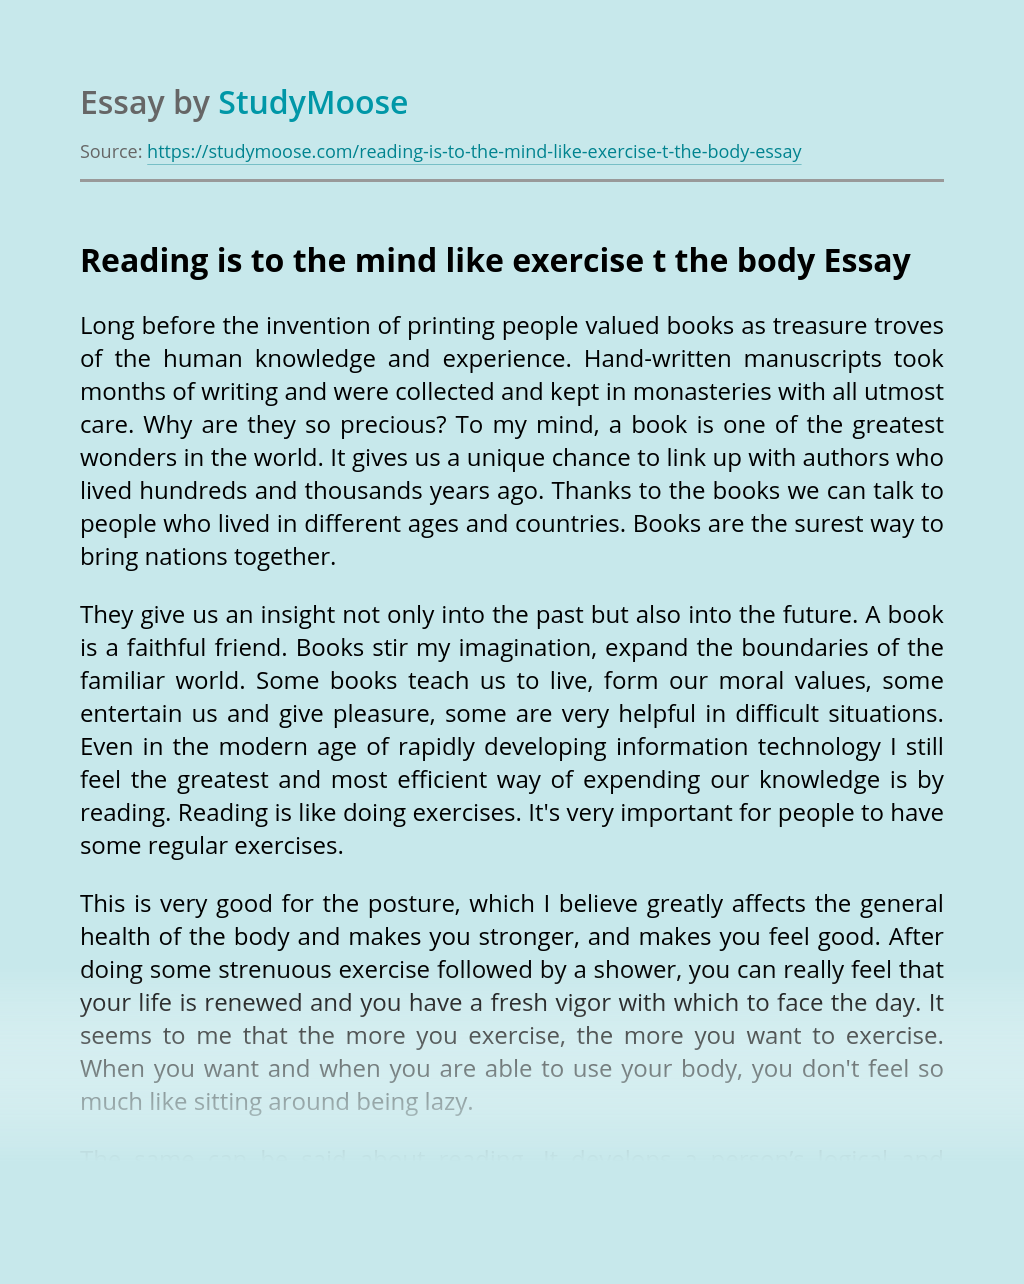 Reading is to the mind like exercise t the body